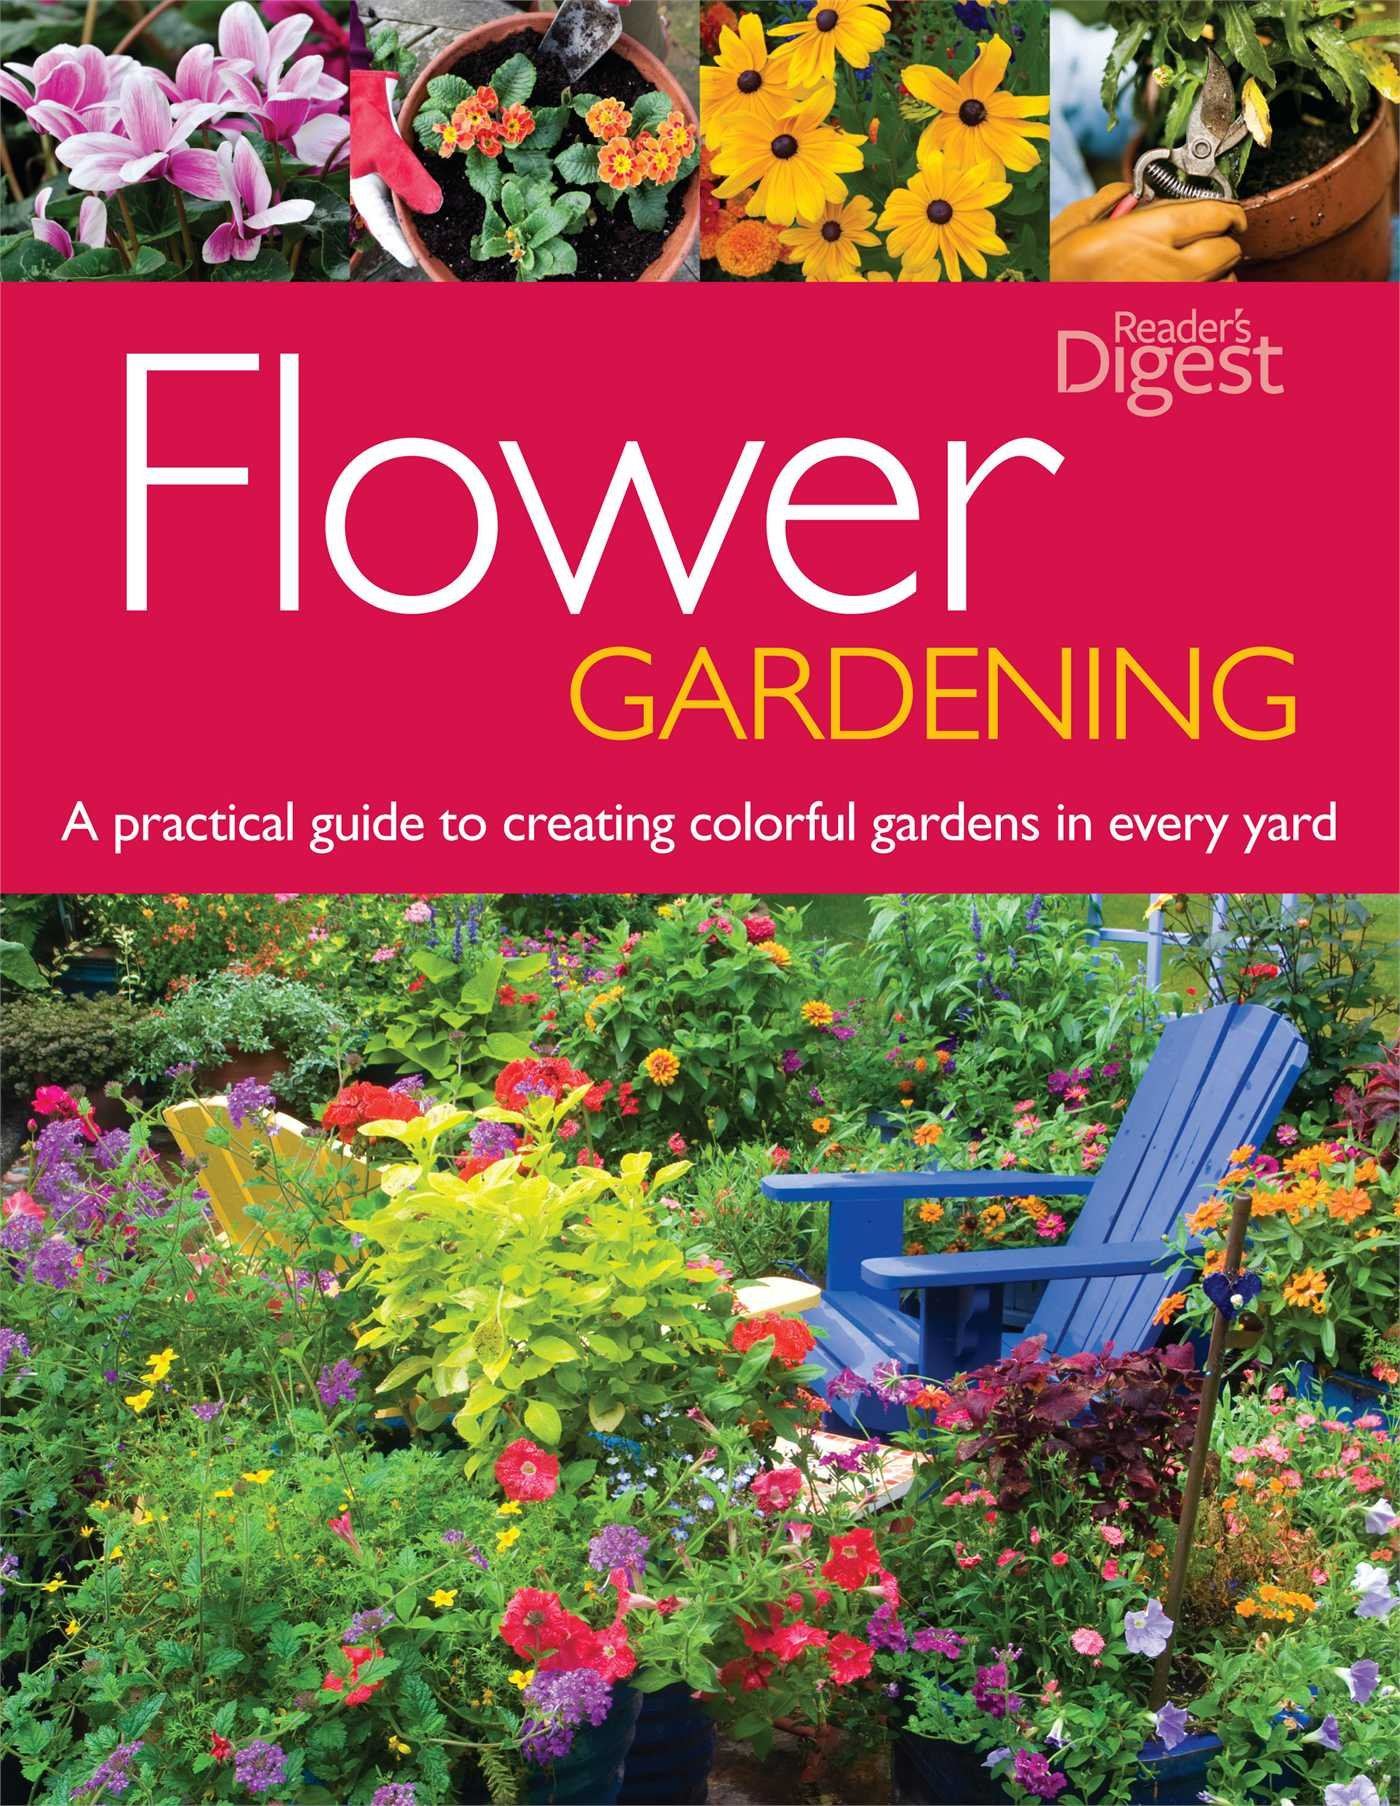 Flower Gardening A Practical Guide To Creating Colorful Gardens In Every Yard Julie Bawden Davis 9781606523629 Amazon Com Books